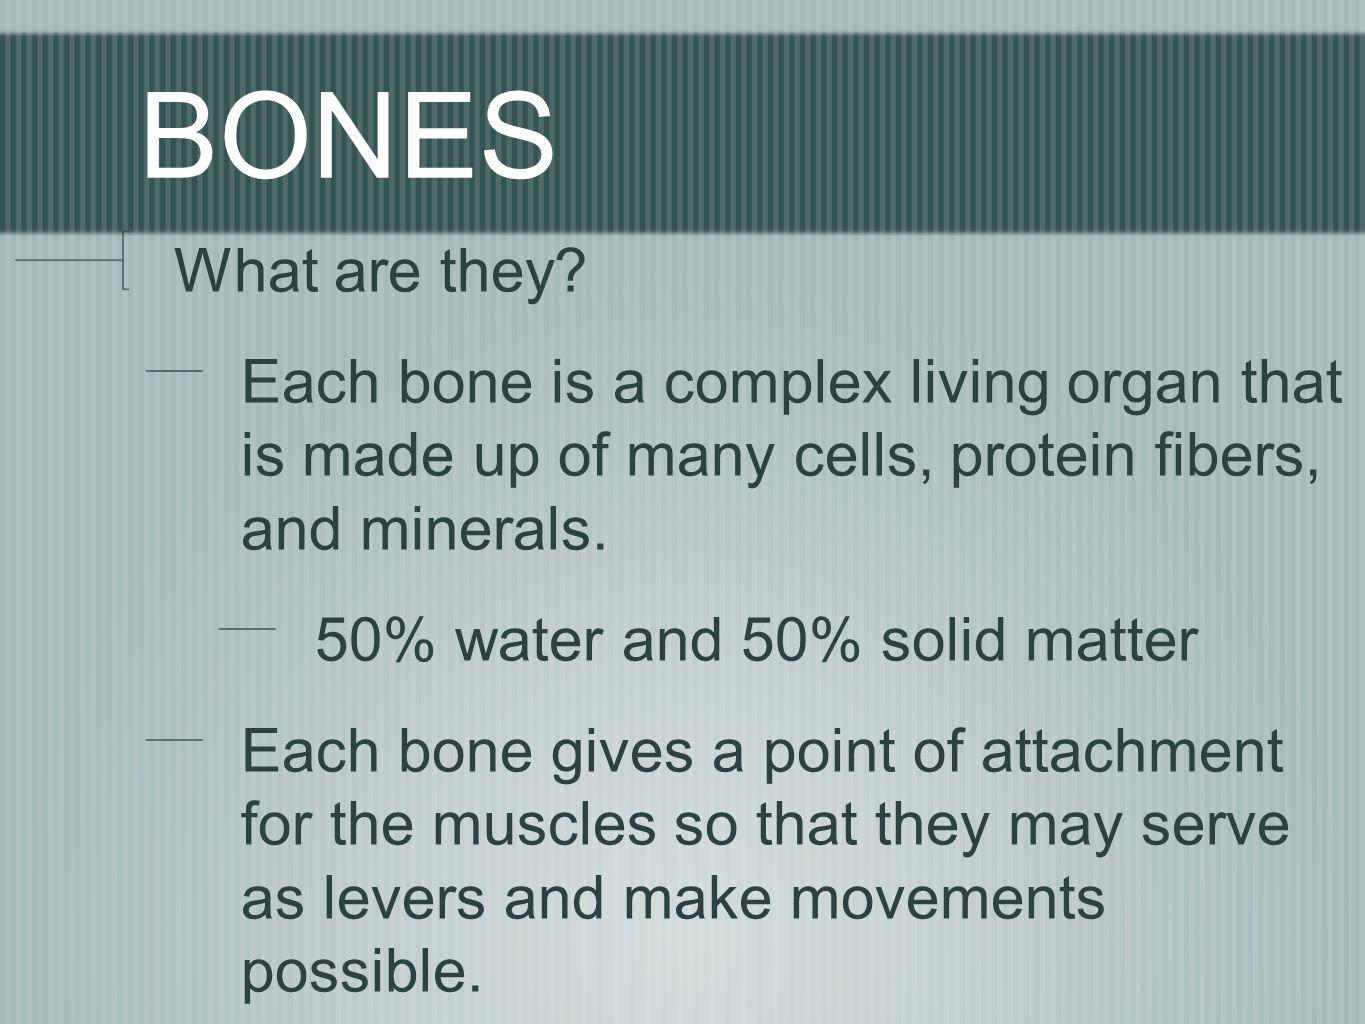 BONES What are they Each bone is a complex living organ that is made up of many cells, protein fibers, and minerals.